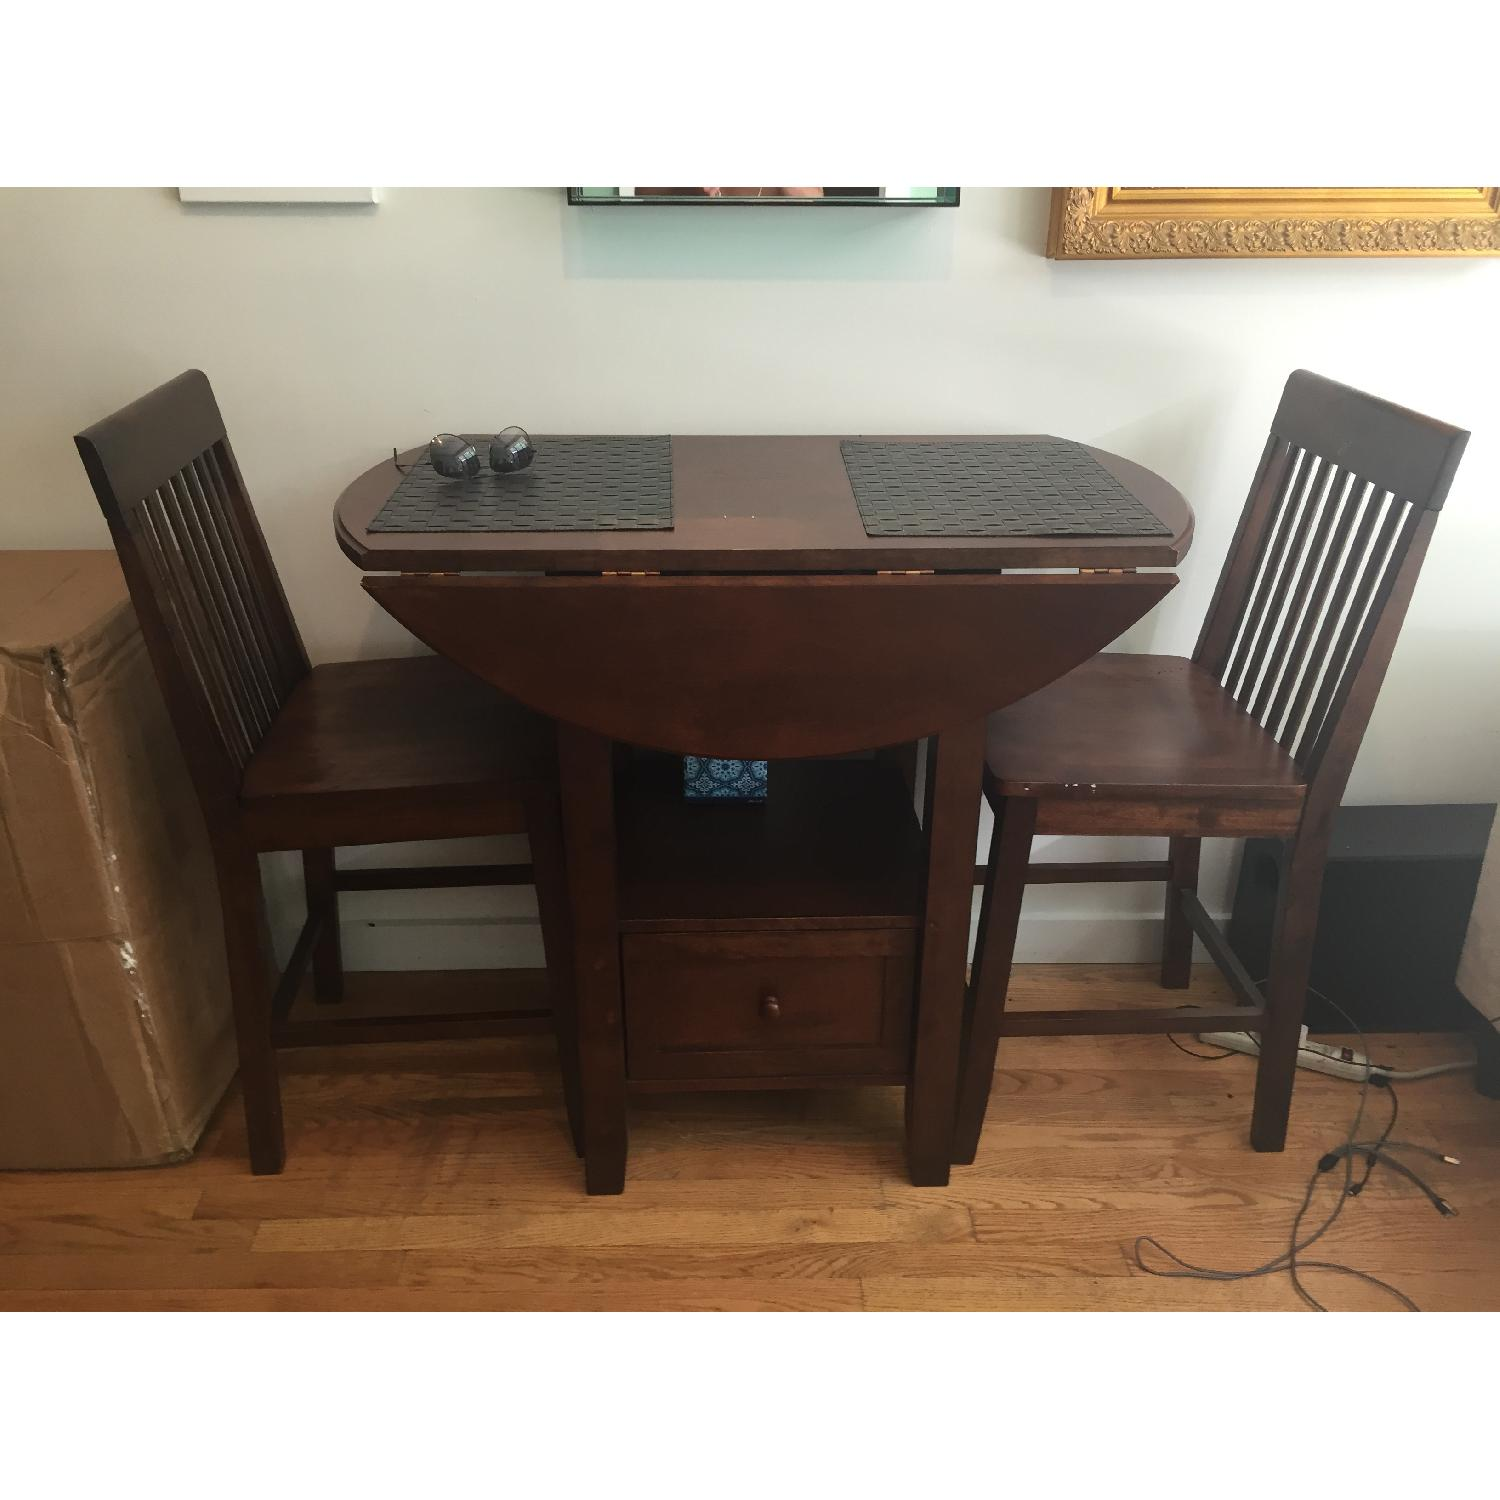 Threshold Wood High Top Table w/ 2 Chairs - image-1